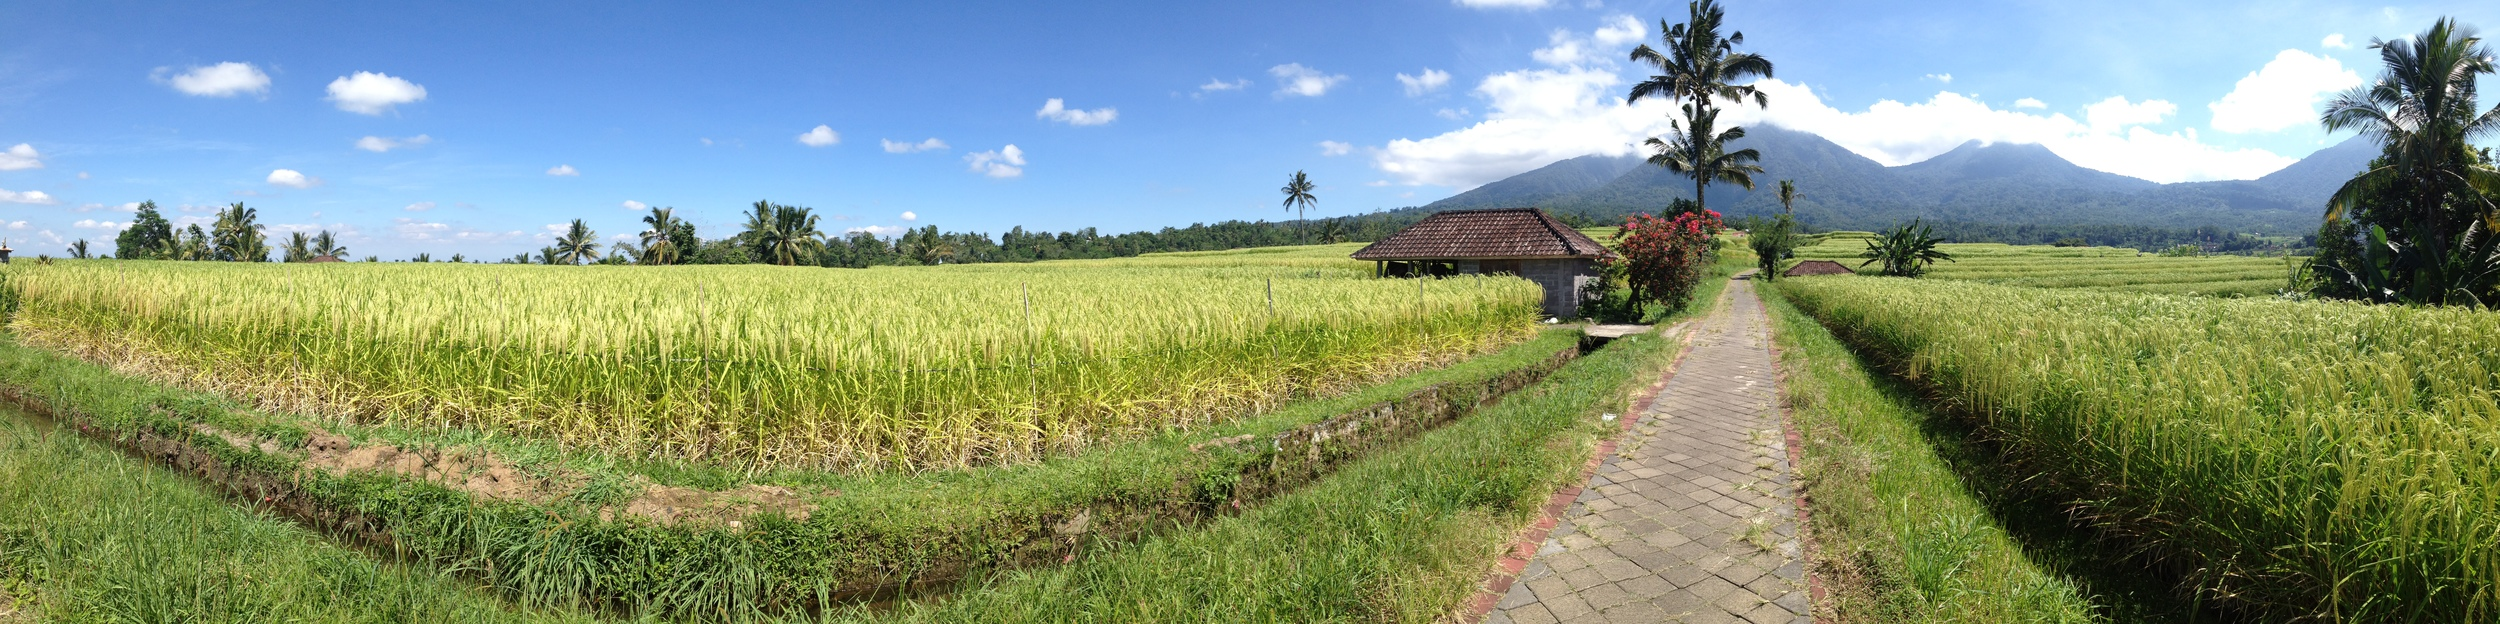 On one of our two day-excursions, we visited Jatiluwih. UNESCO Protected Rice Fields that stretch into the distance.